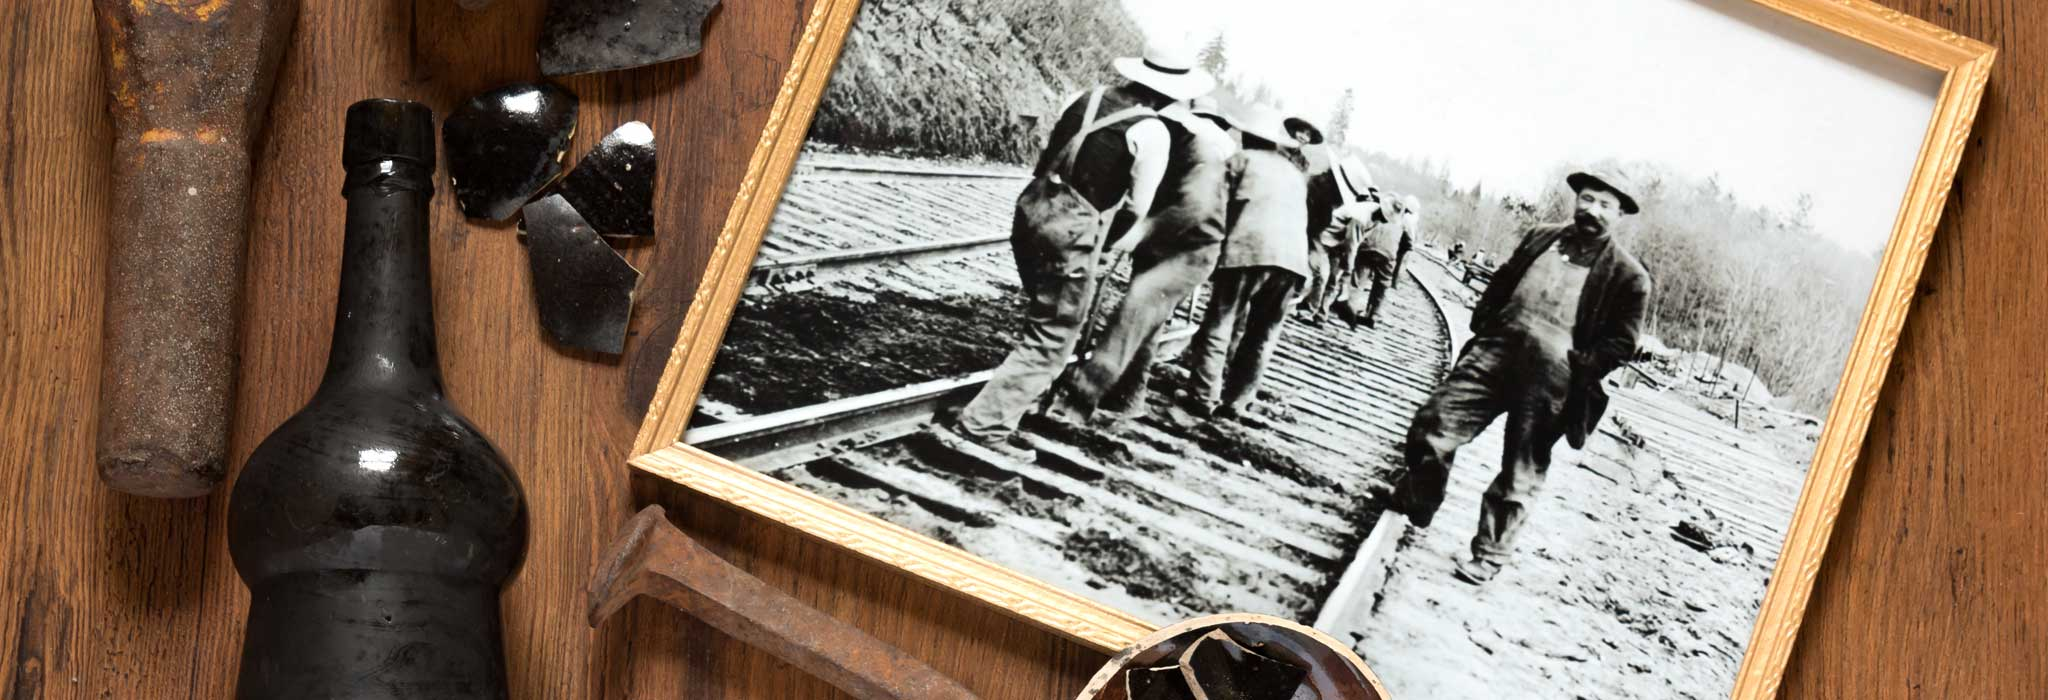 Black and white image of men working on railway tracks surrounded by artifacts